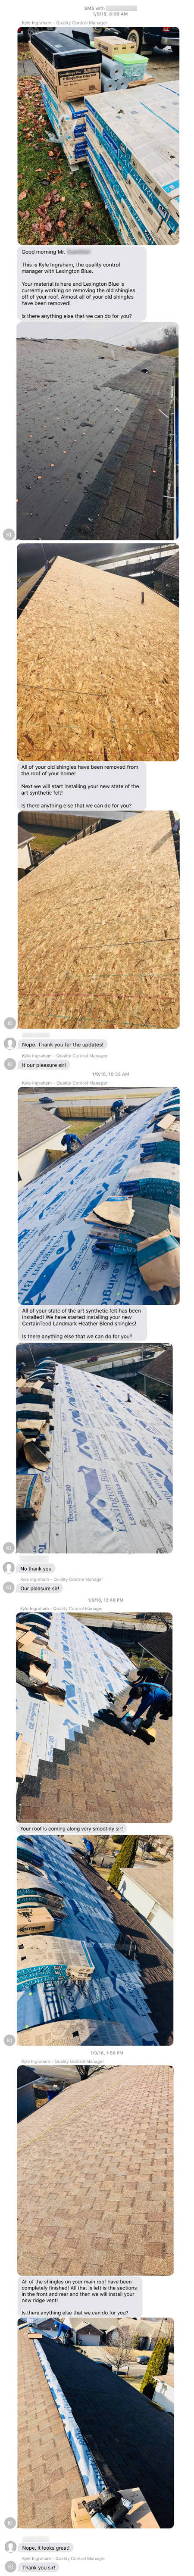 roofing progress report documentation text messages